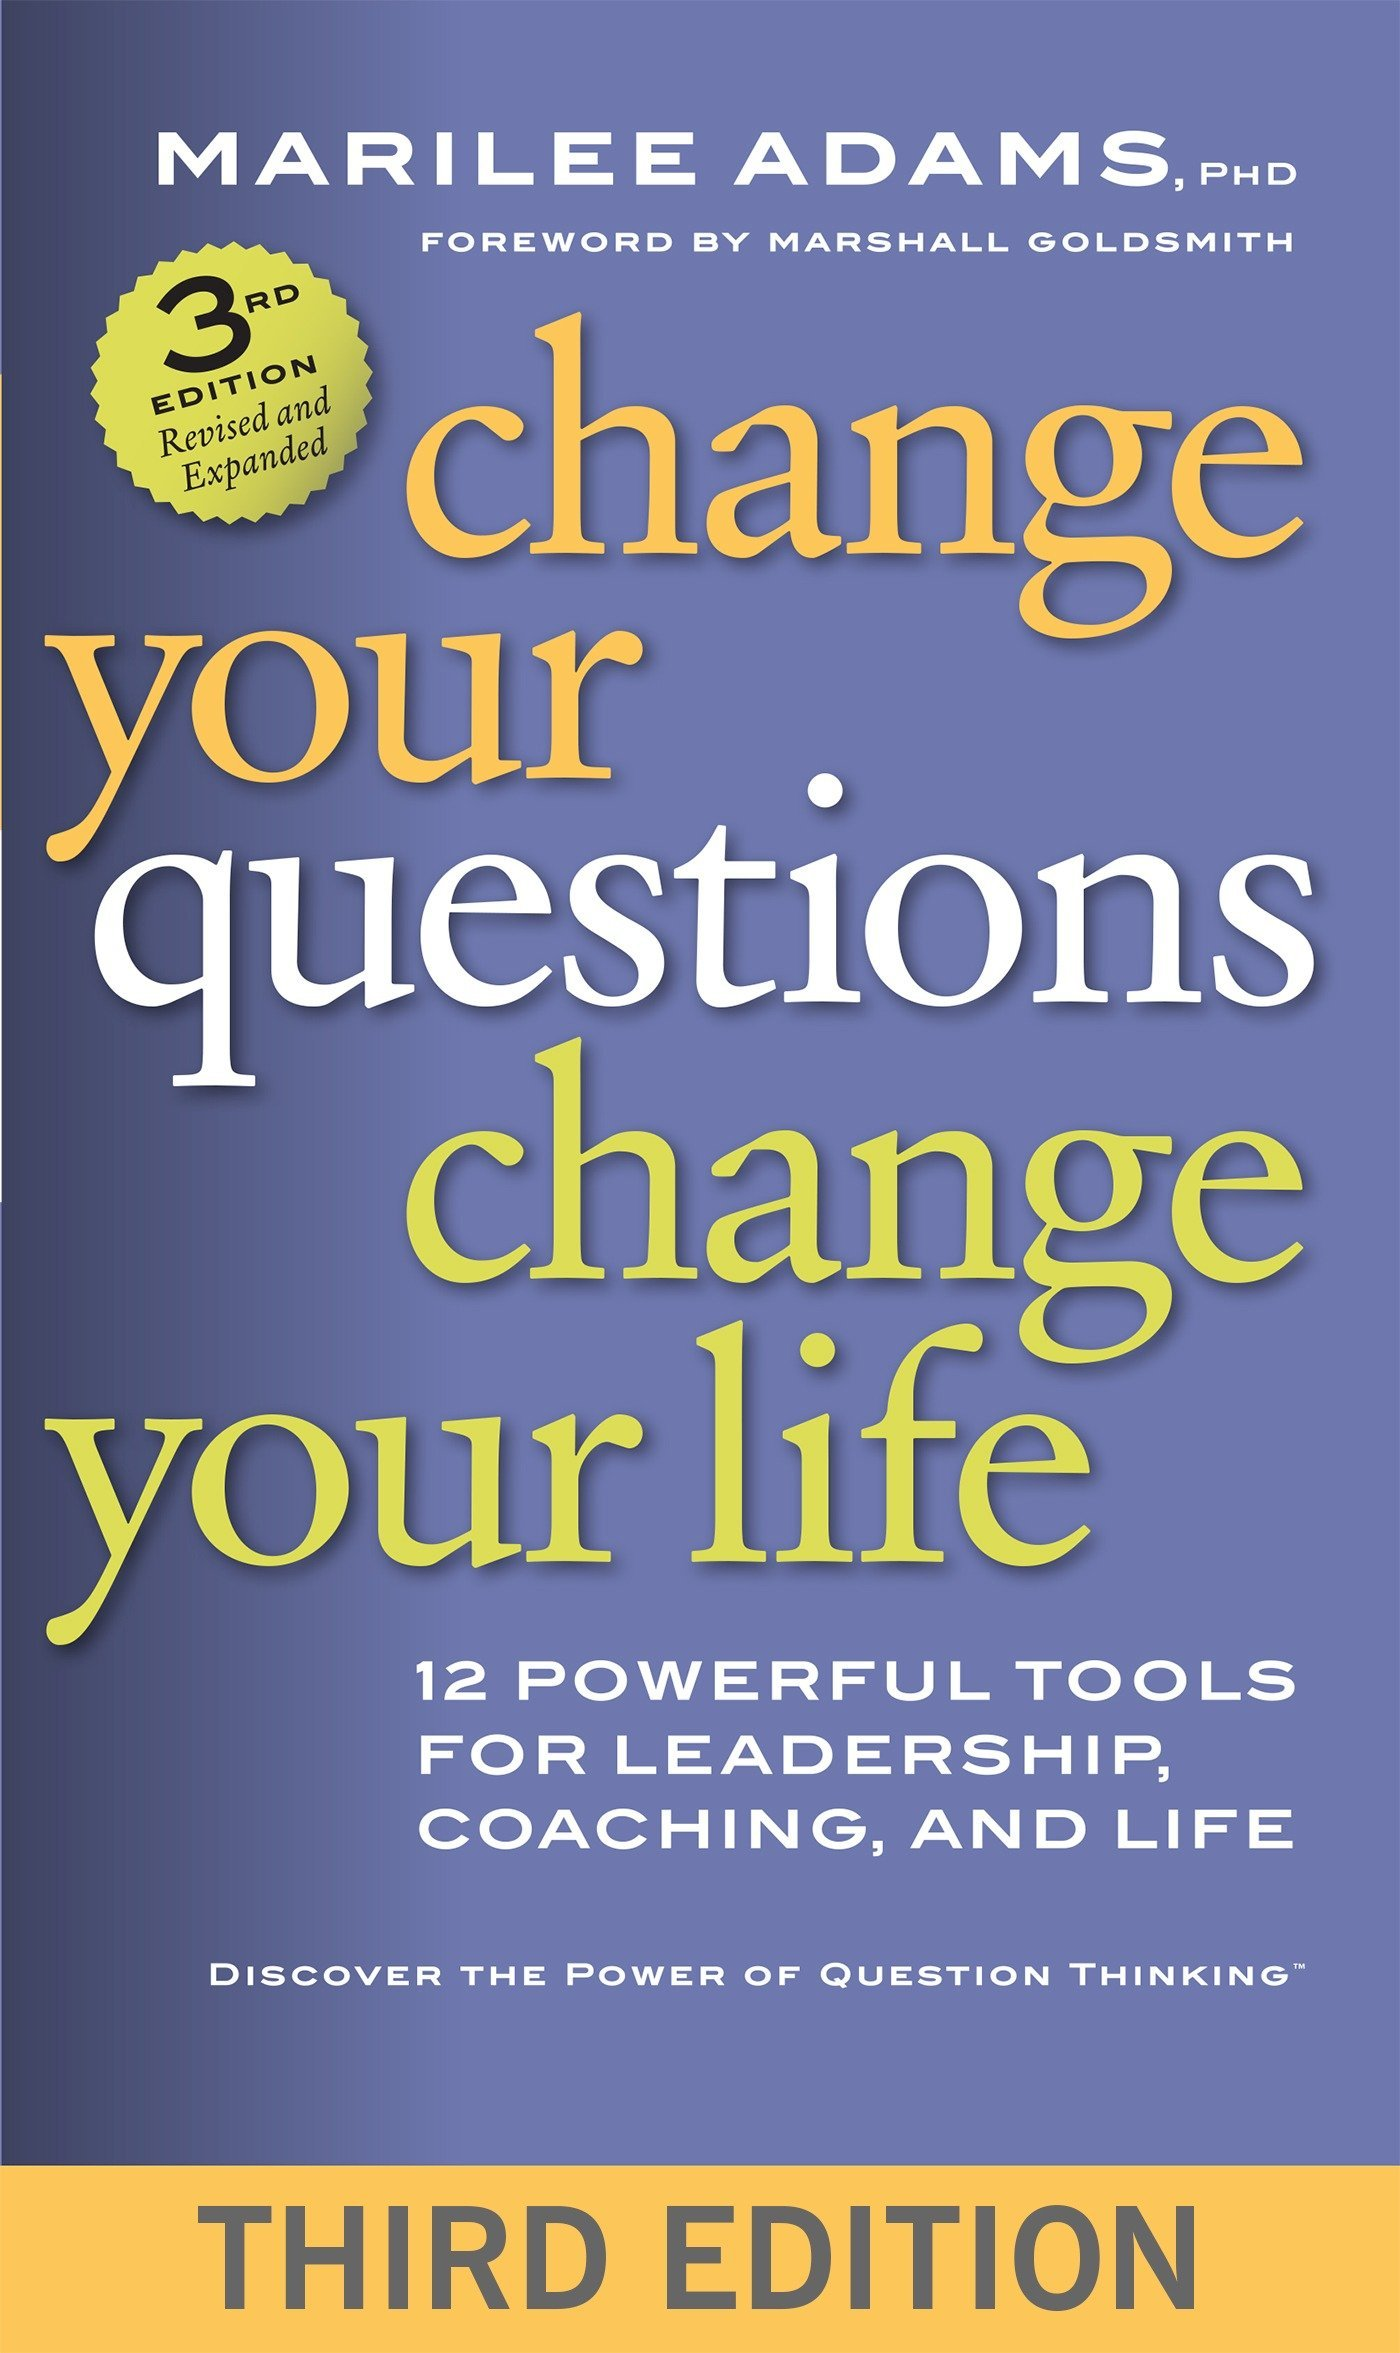 Amazon.com: Change Your Questions, Change Your Life: 12 Powerful Tools for  Leadership, Coaching, and Life (9781626566330): Marilee Adams Ph.D., ...